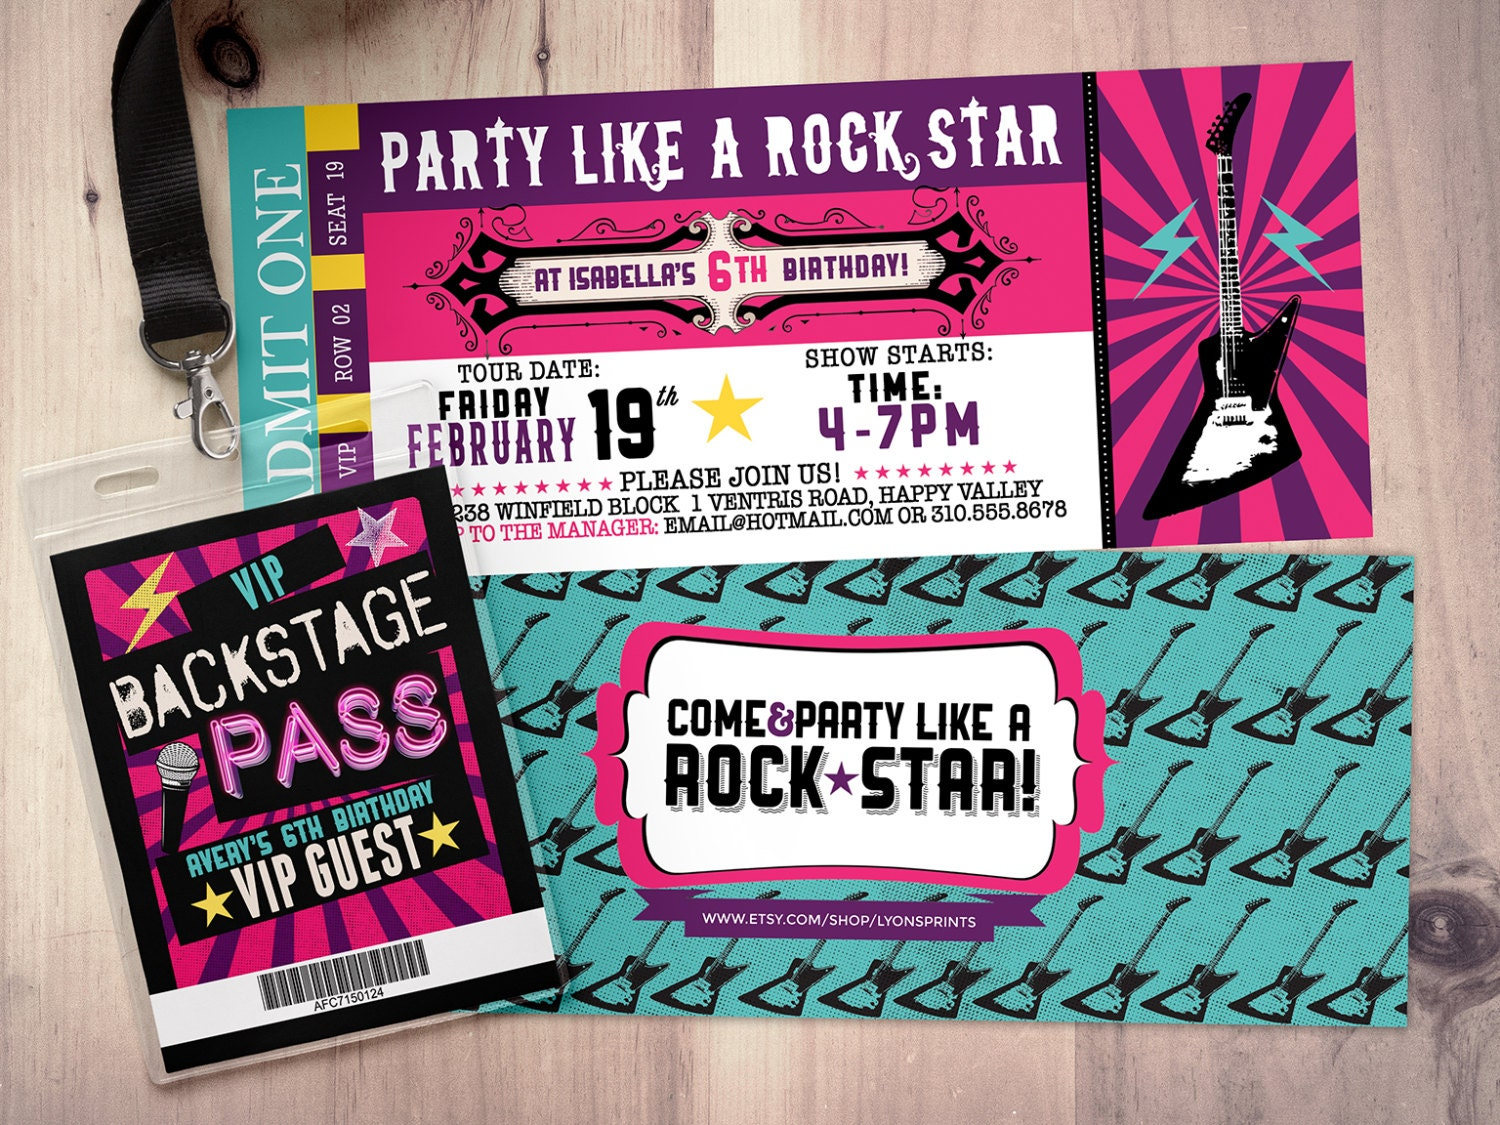 ROCK STAR Concert Ticket Birthday Party Invitation  Music Invitation   Printable, Rockstar Party, Pop Star, Karaoke Party, Hip Hop, Invite  Concert Ticket Invitations Template